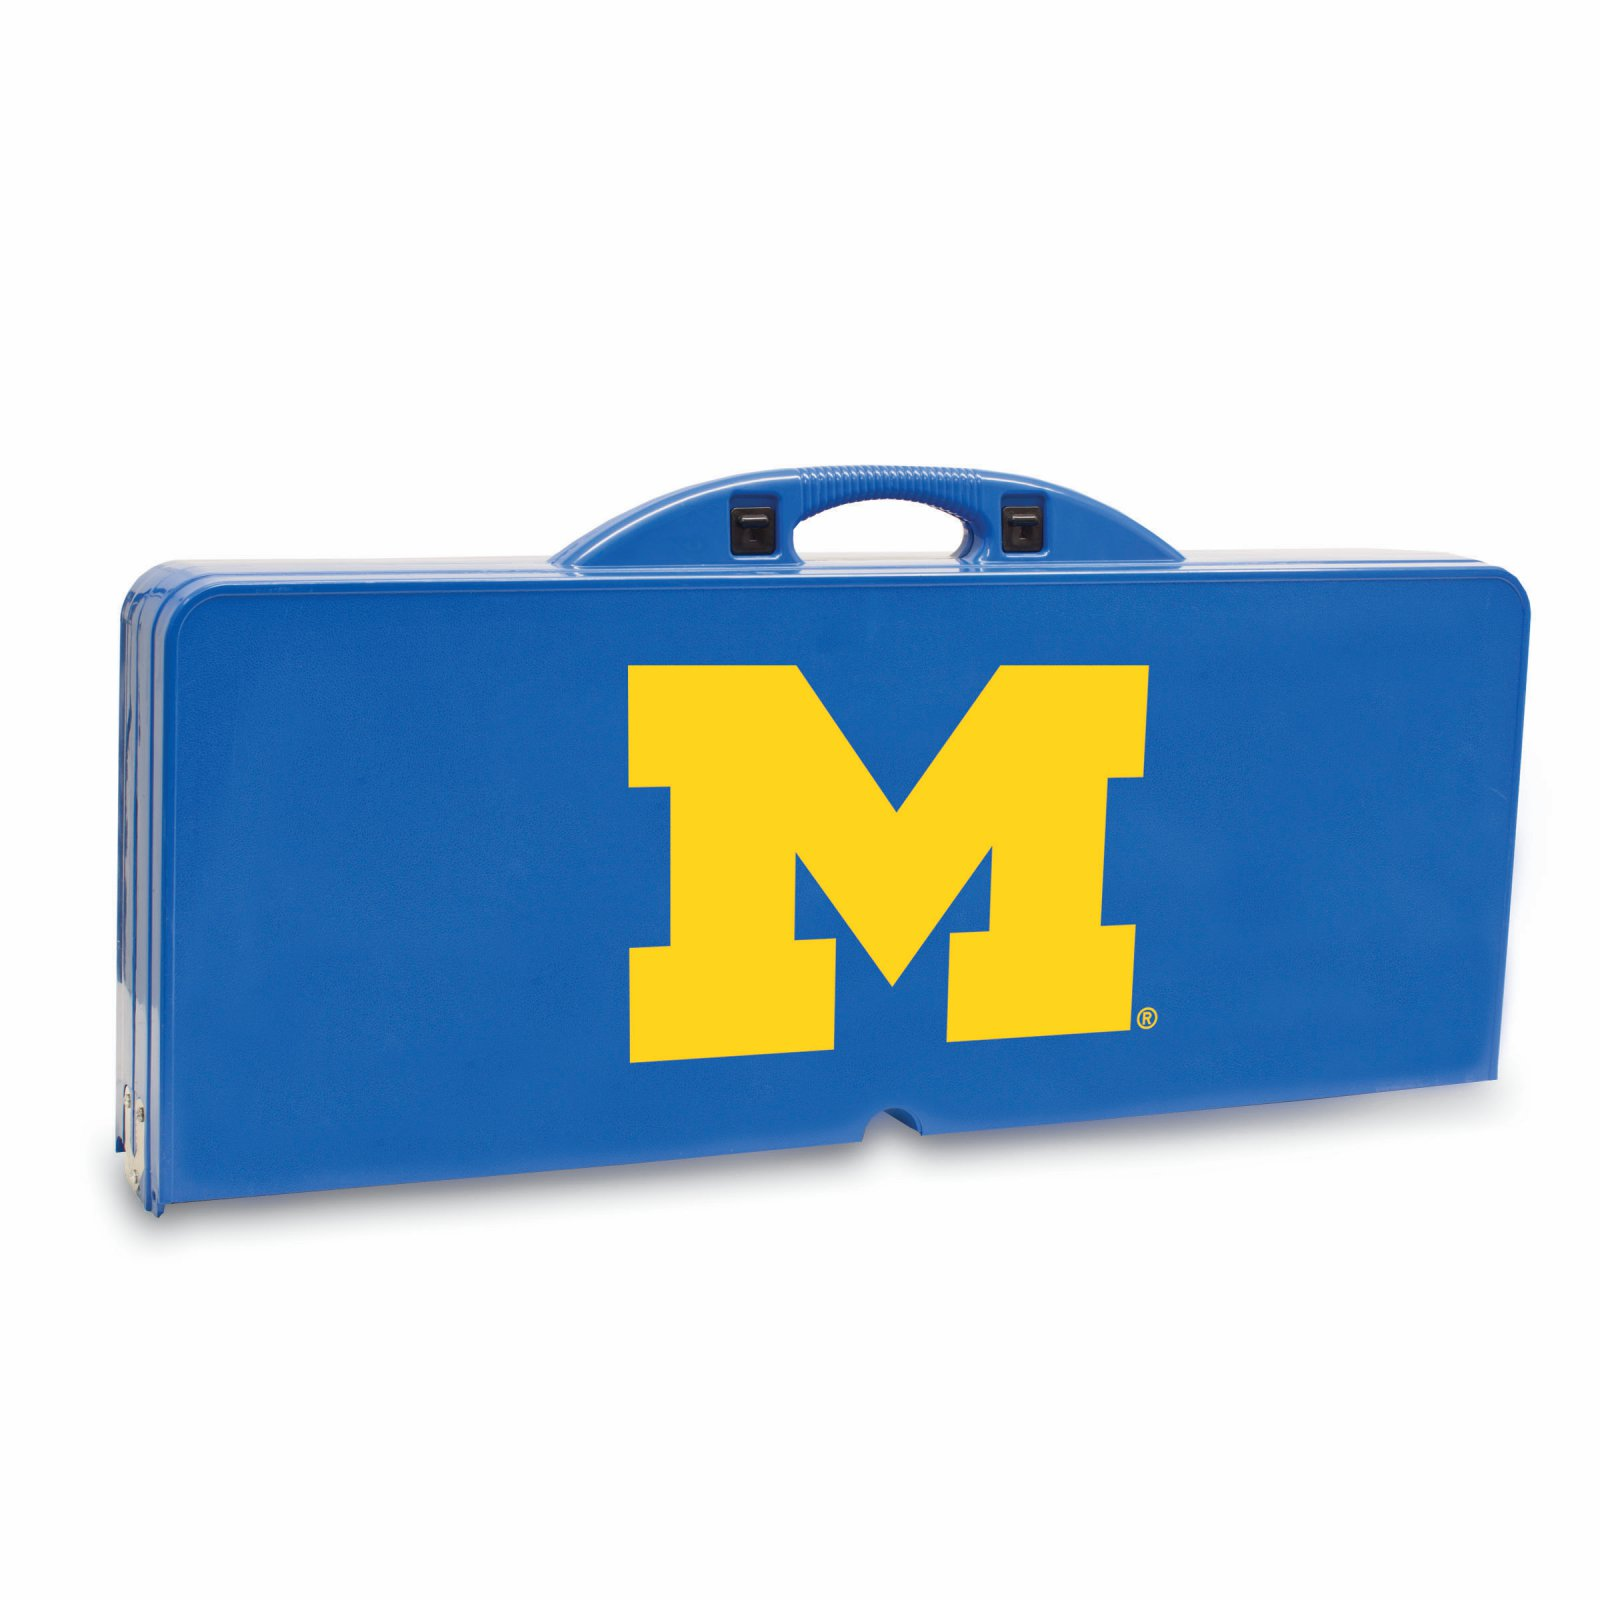 Michigan Wolverines - Portable Picnic Table by Picnic Time (Blue)